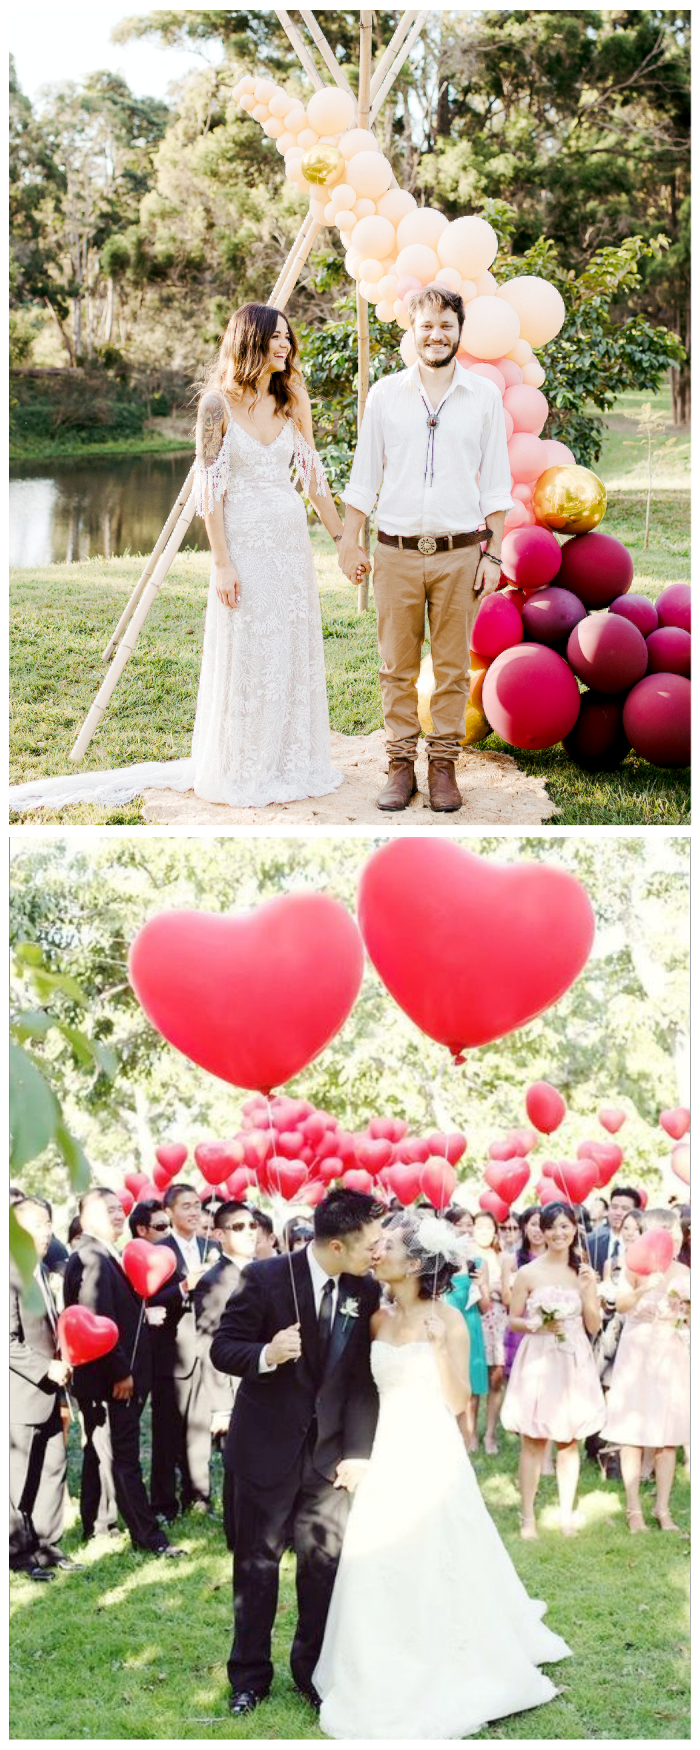 wedding decorations balloon photo opportunity couple backdrop